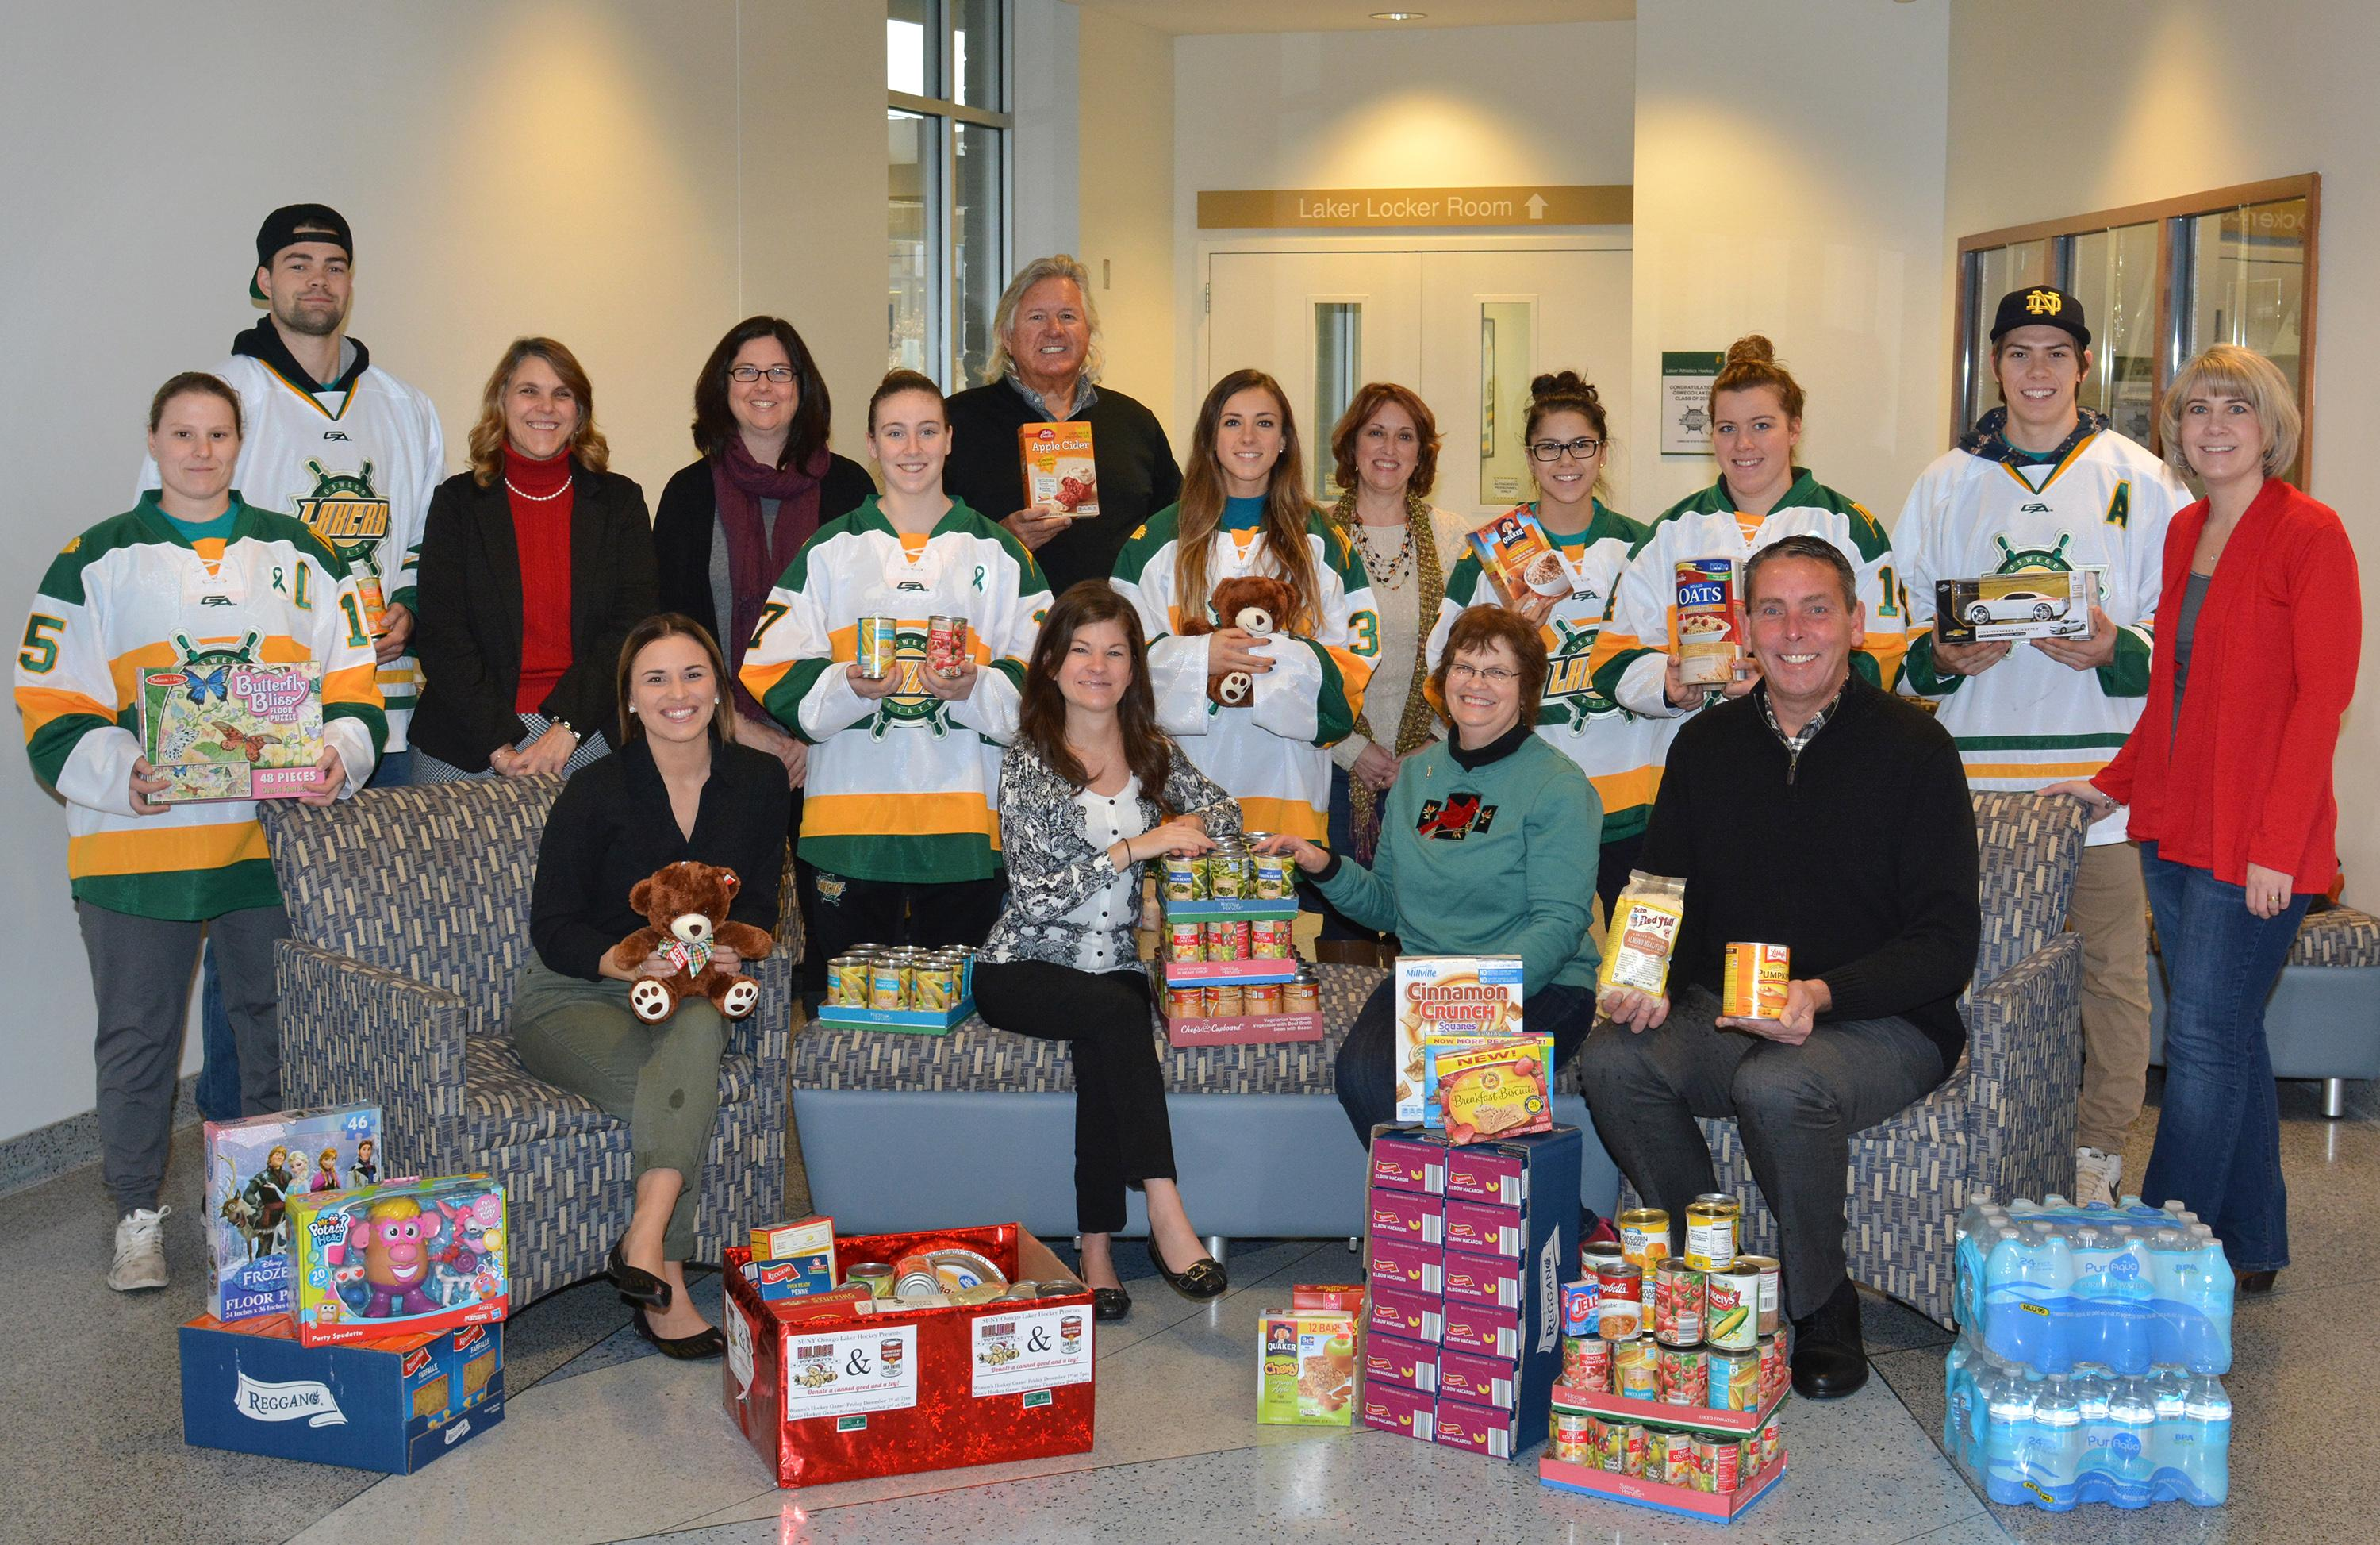 Hockey players, Oswego employees, and representatives of United Way and Human Concerns Center with food and toys